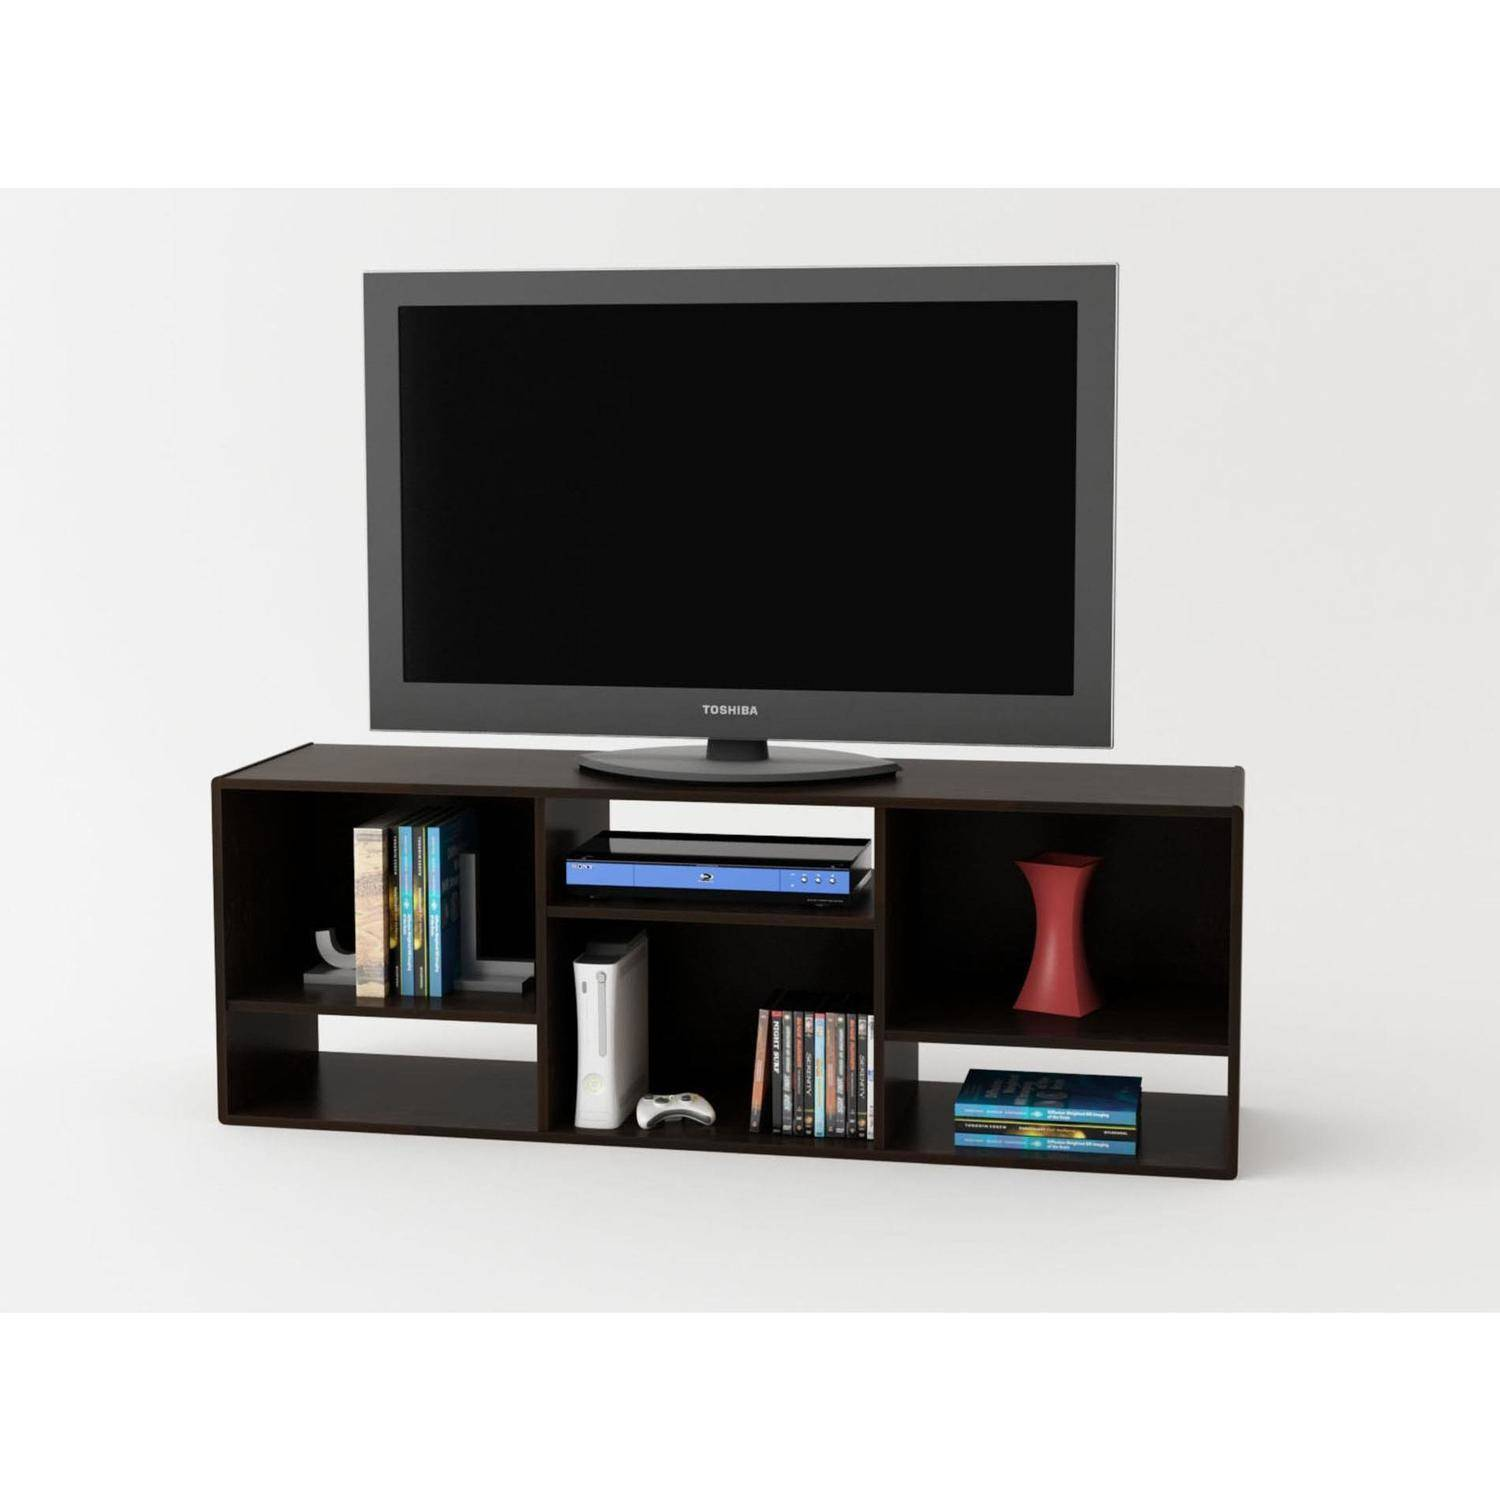 geo tv bookcase case espresso floating wall bookcases eco stand and modular products minimalist mount book with fireplace